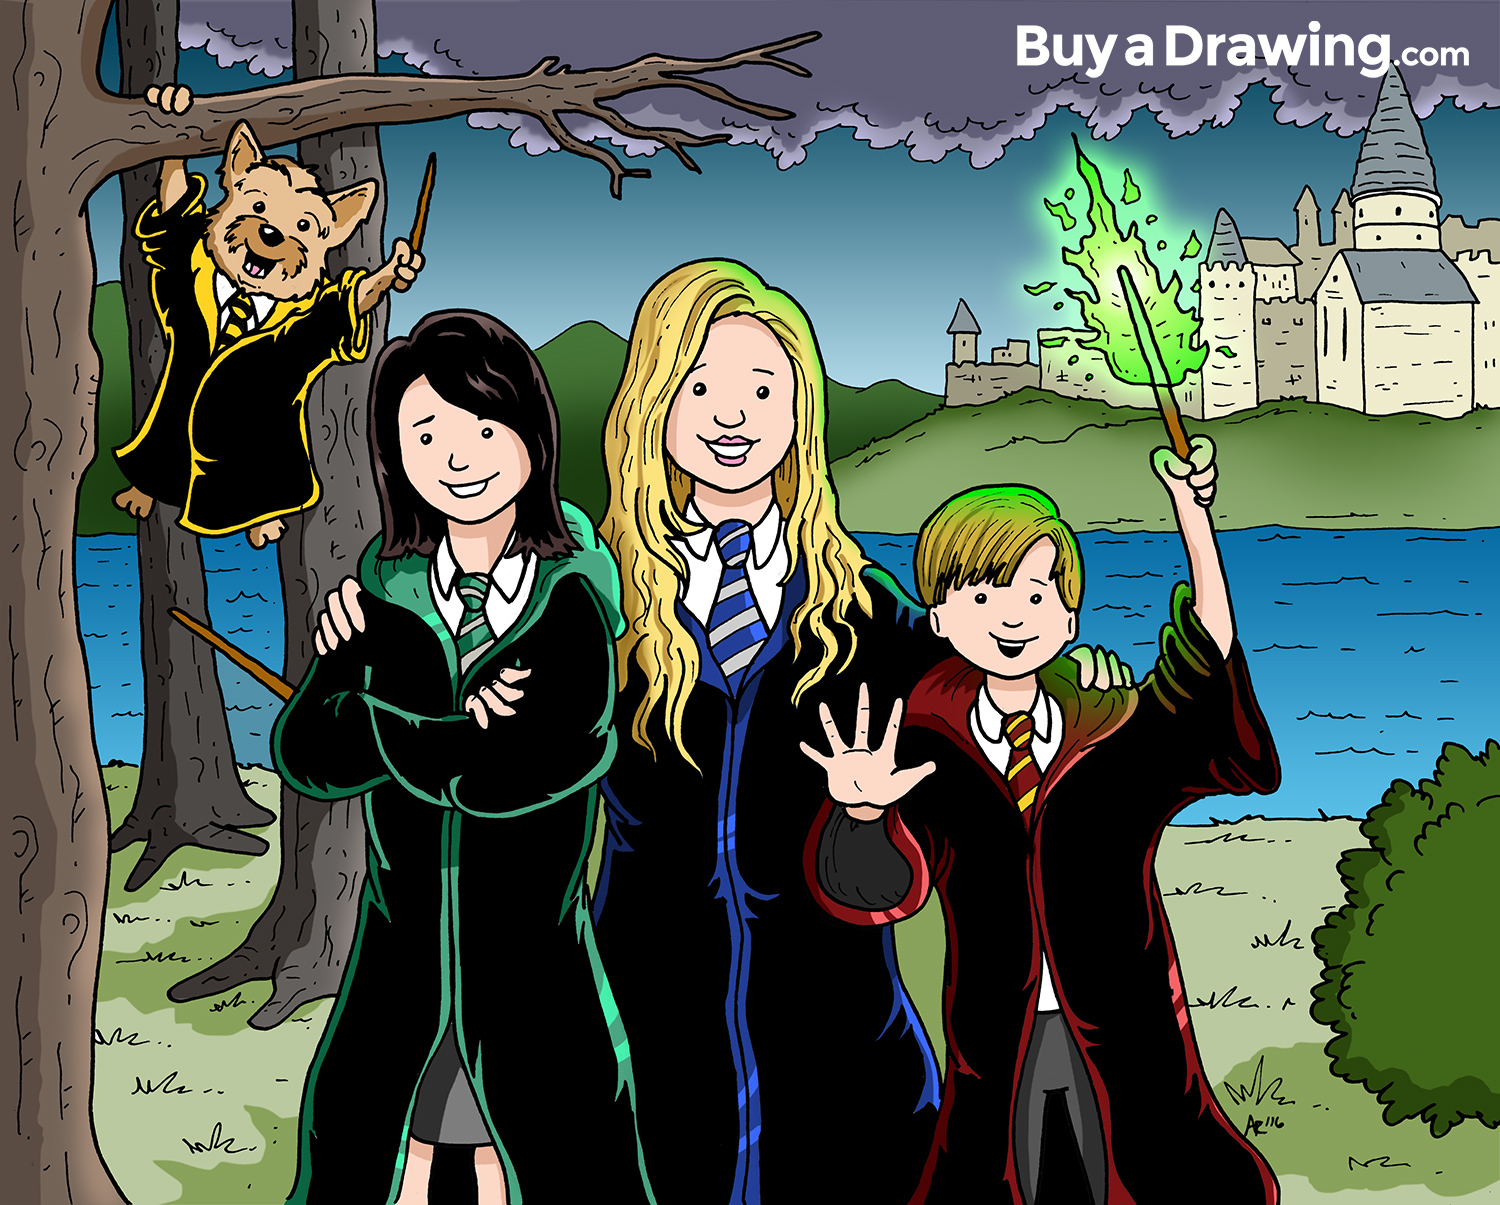 Cartoon Drawing of a Family as Harry Potter Characters